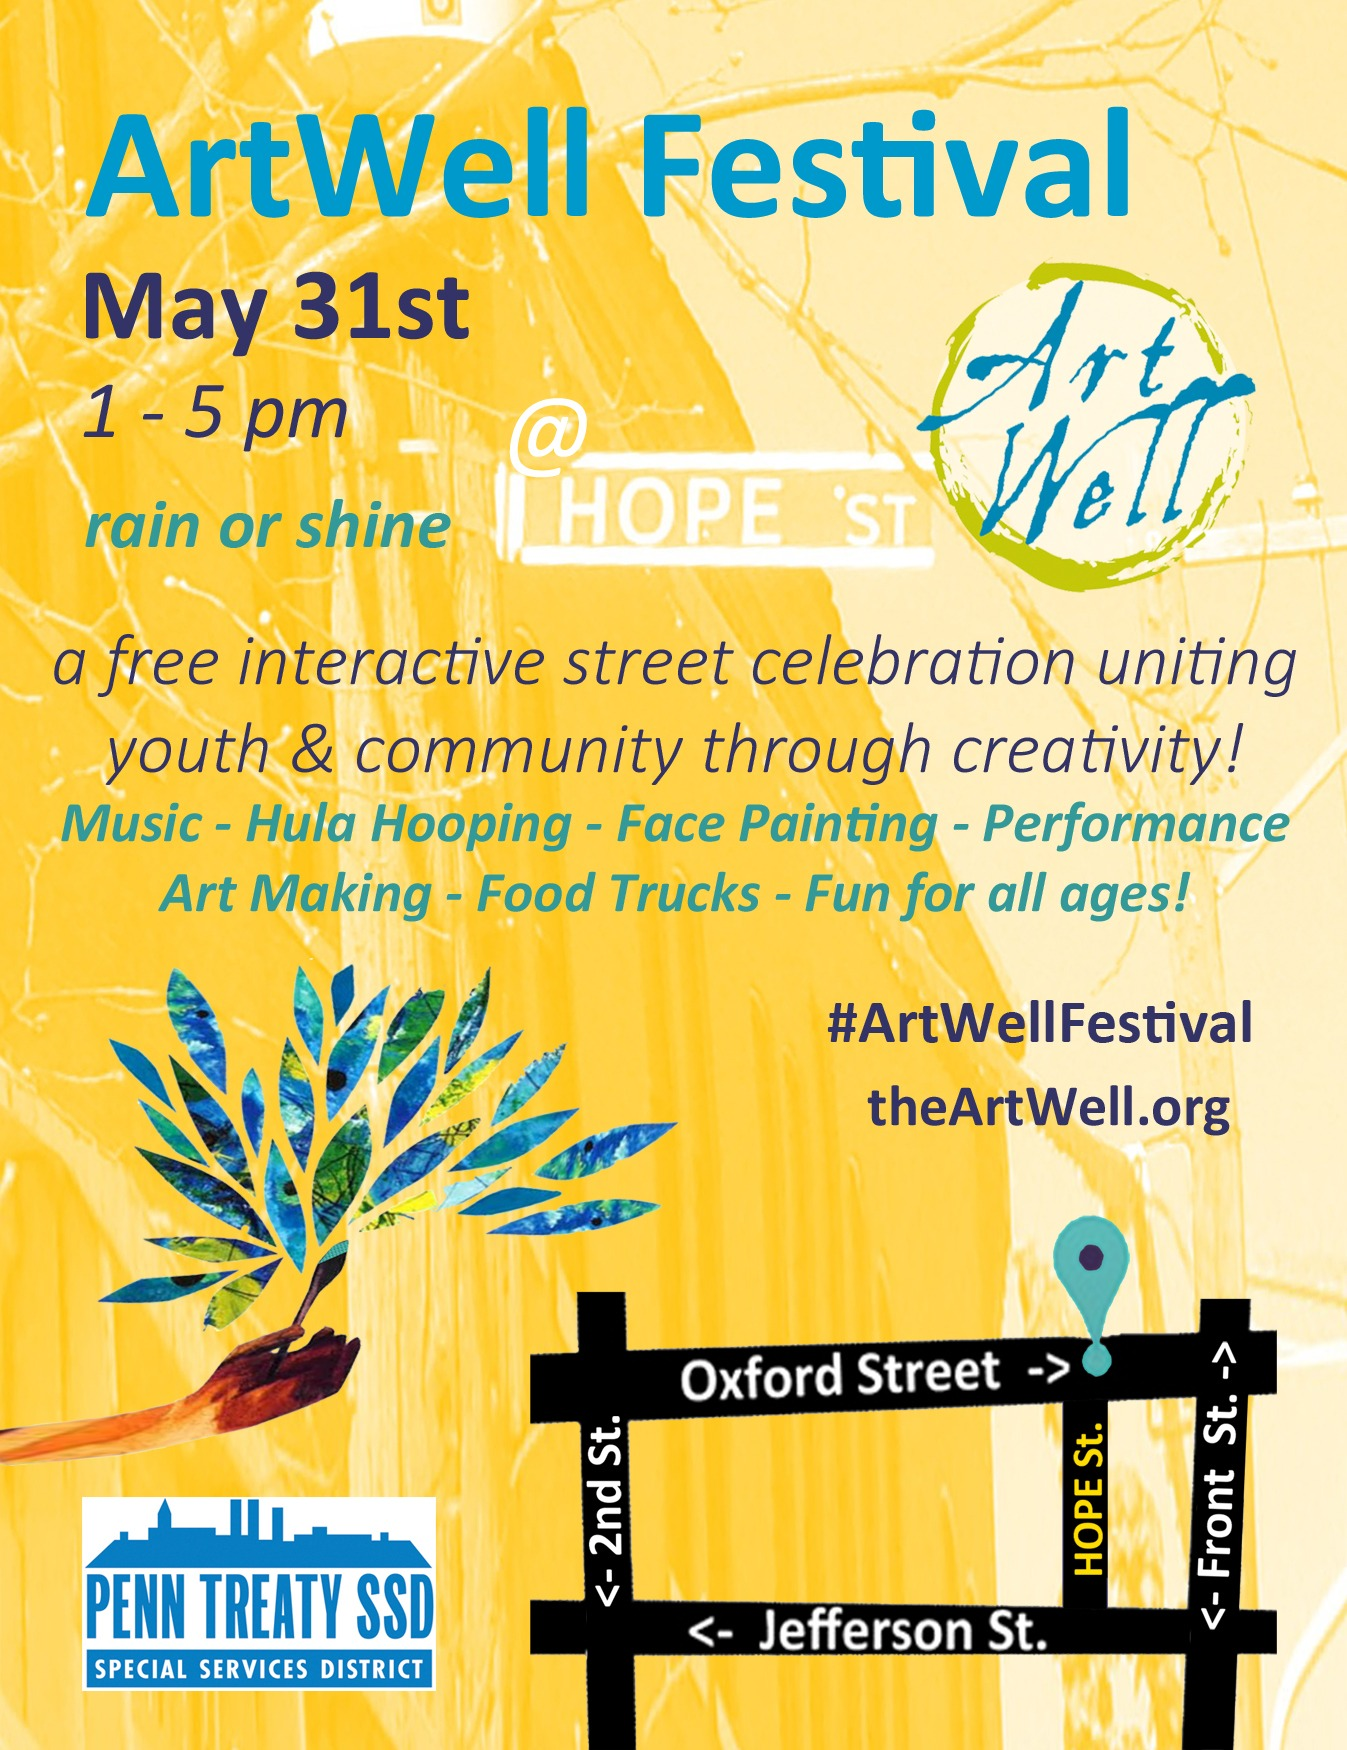 ArtWell Festival is this Sunday!